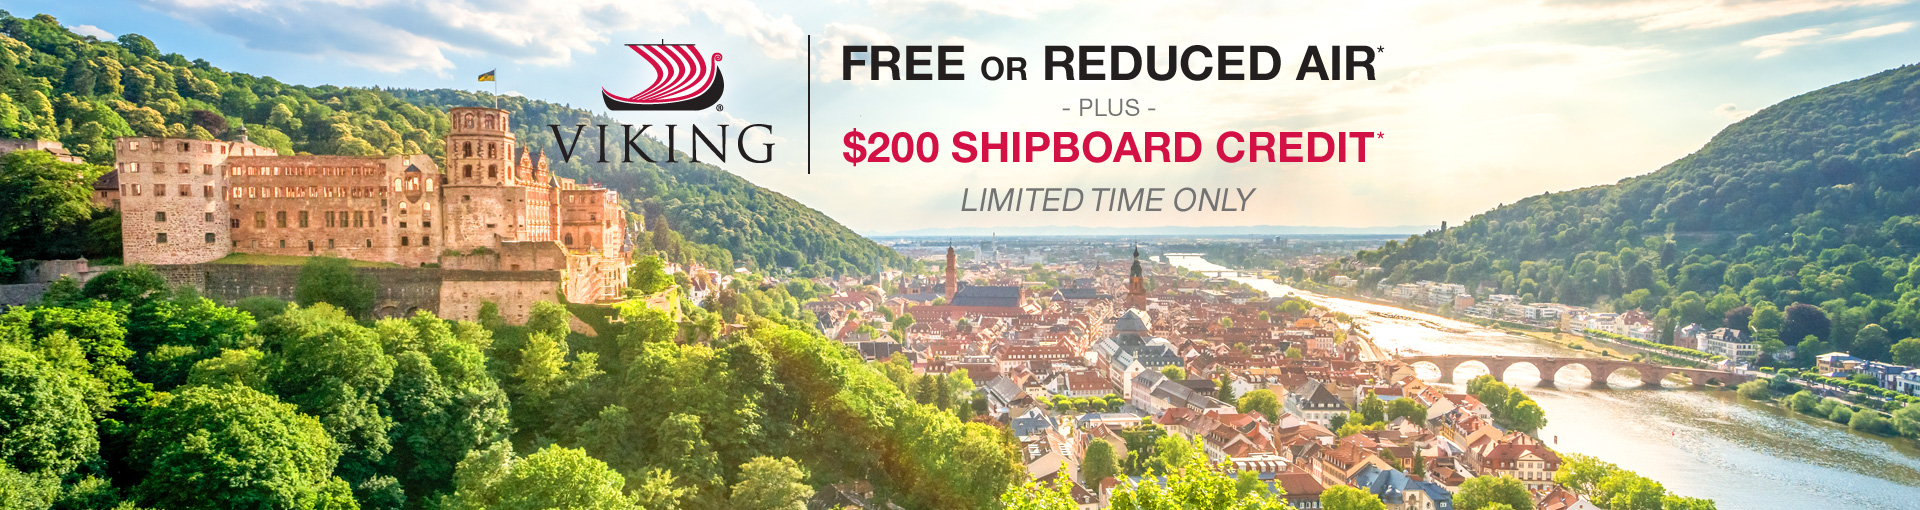 Viking River Cruises: Free or Reduced Airfare